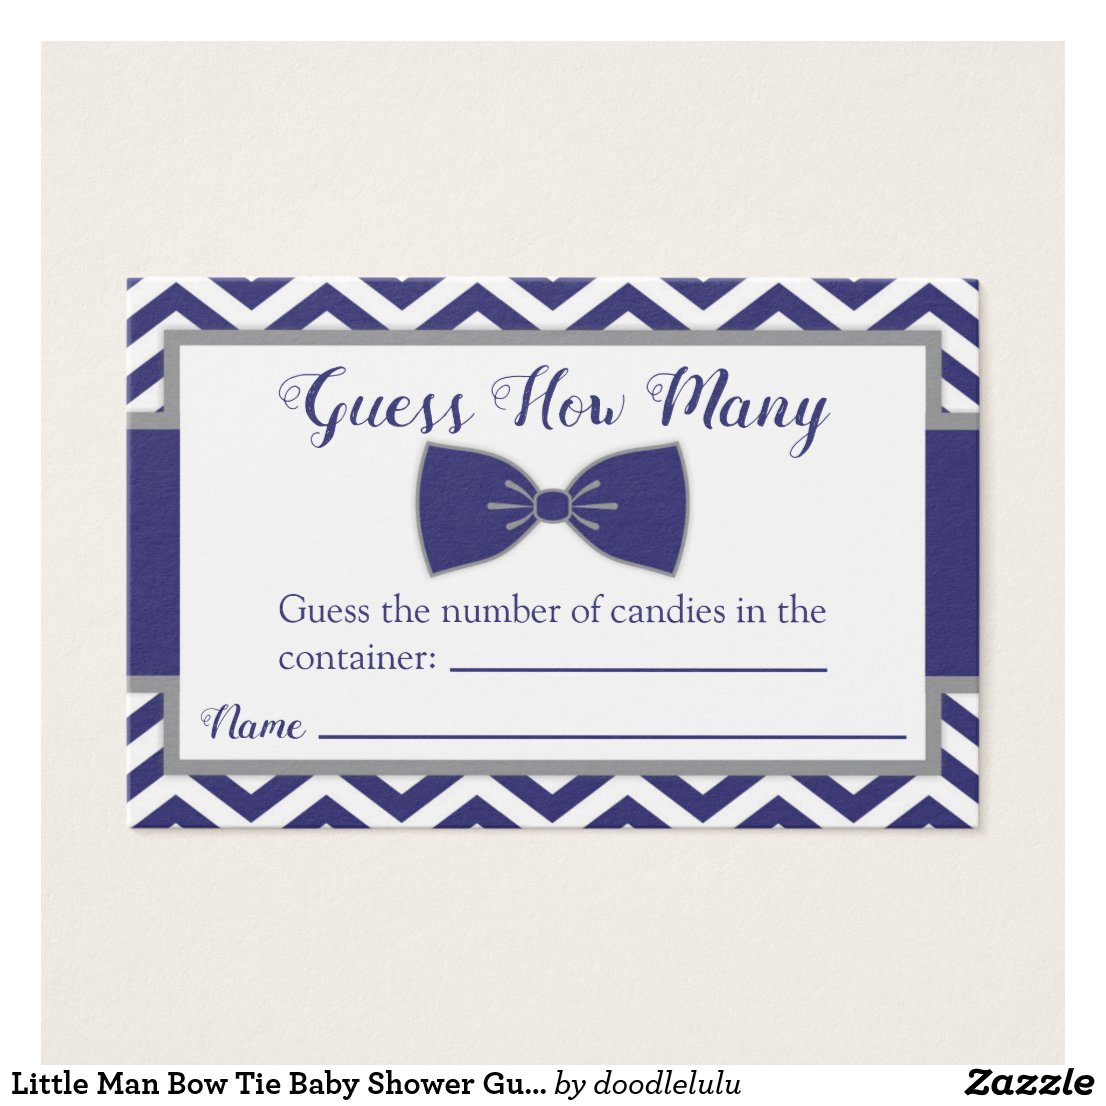 Little Man Bow Tie Baby Shower Guess How Many Card